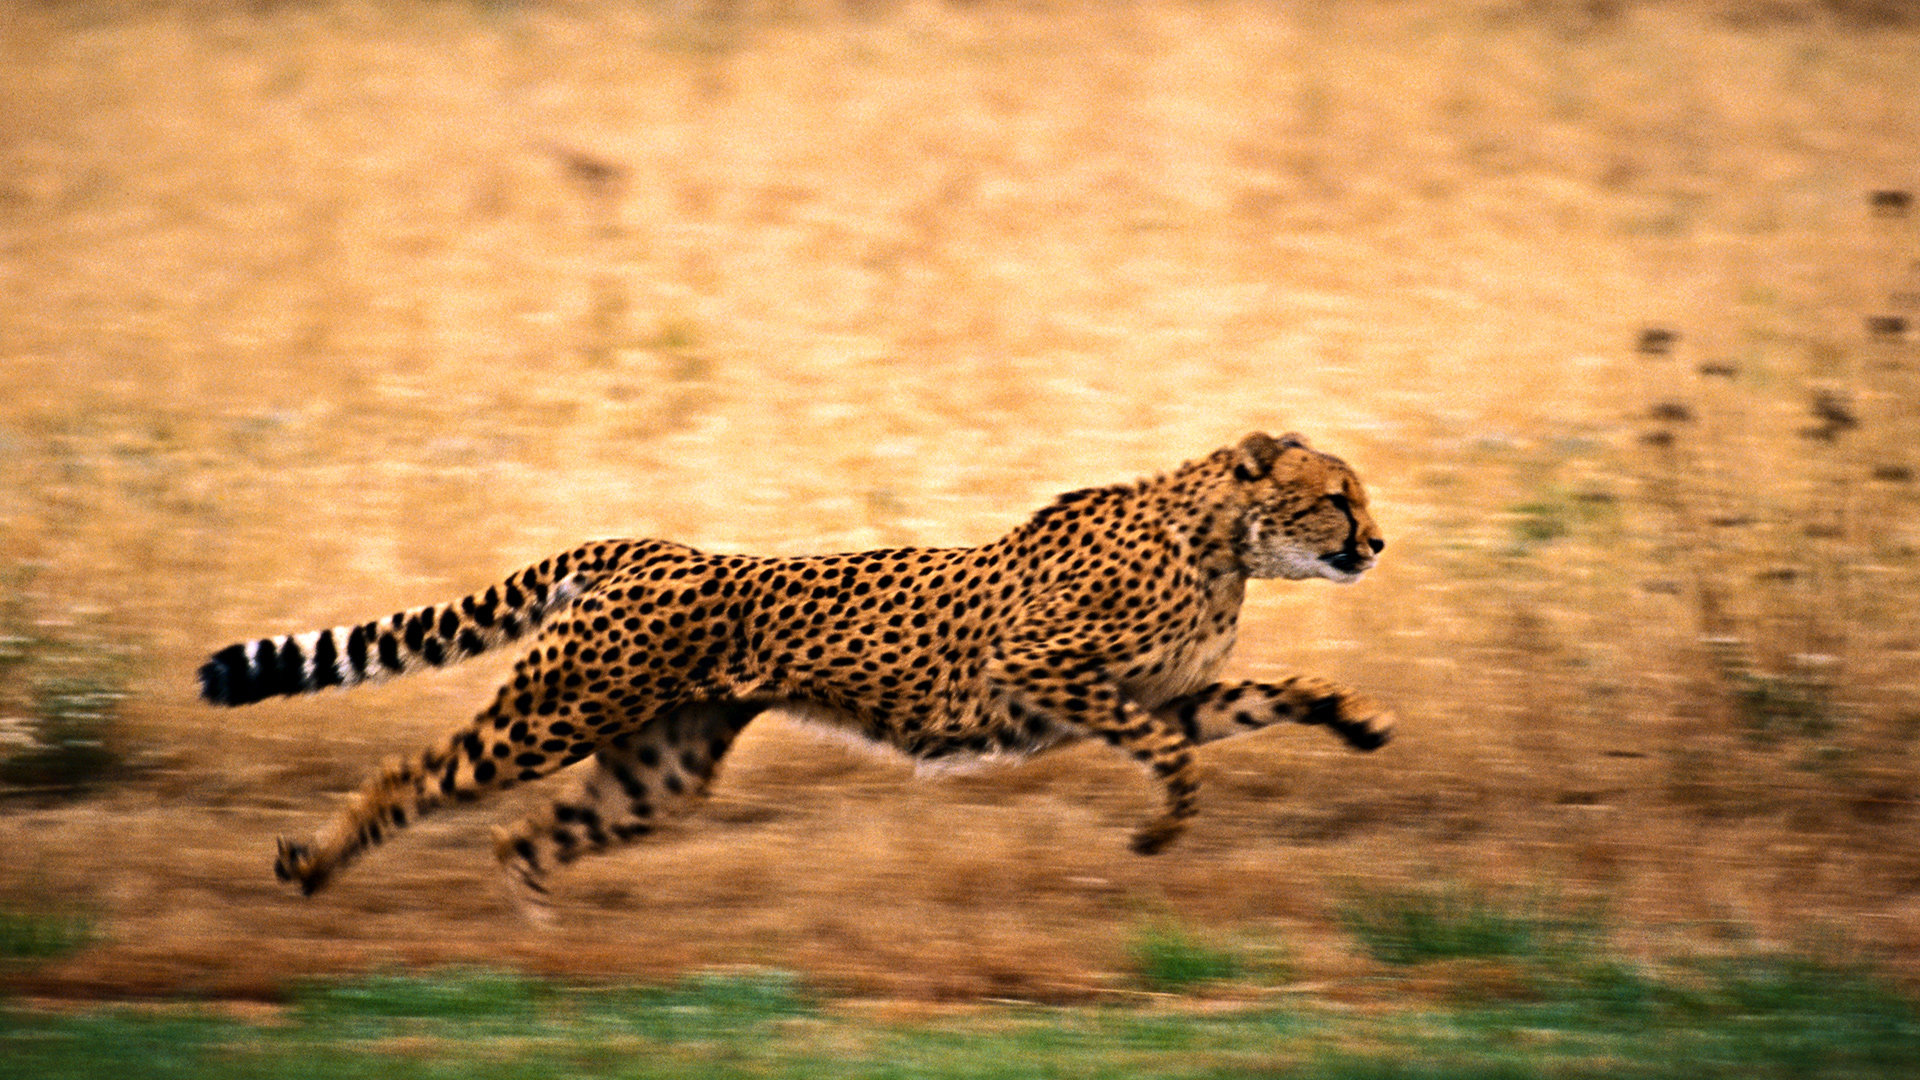 Download hd 1920x1080 Cheetah desktop background ID:161833 for free